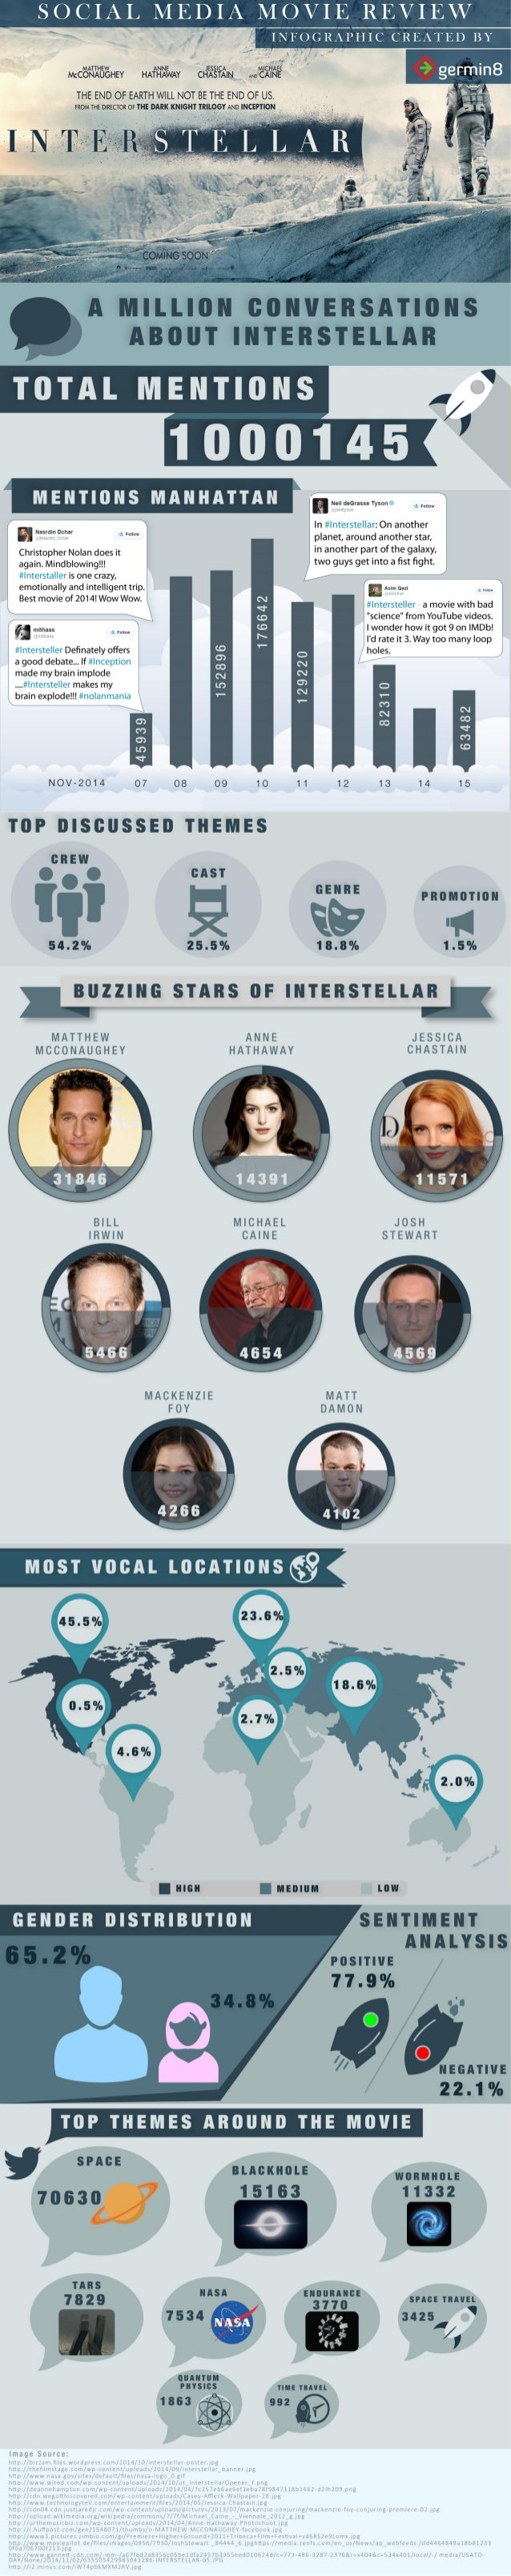 SOCIAL MEDIA MOVIE REVIEW  .  /  INFOGRzfi'HIC CREATED BY  MATTHEW ANNE JES ICA Cl-'l'AE'l. ' ' McCONAUGHEY HATHAWAY CHA§TA...